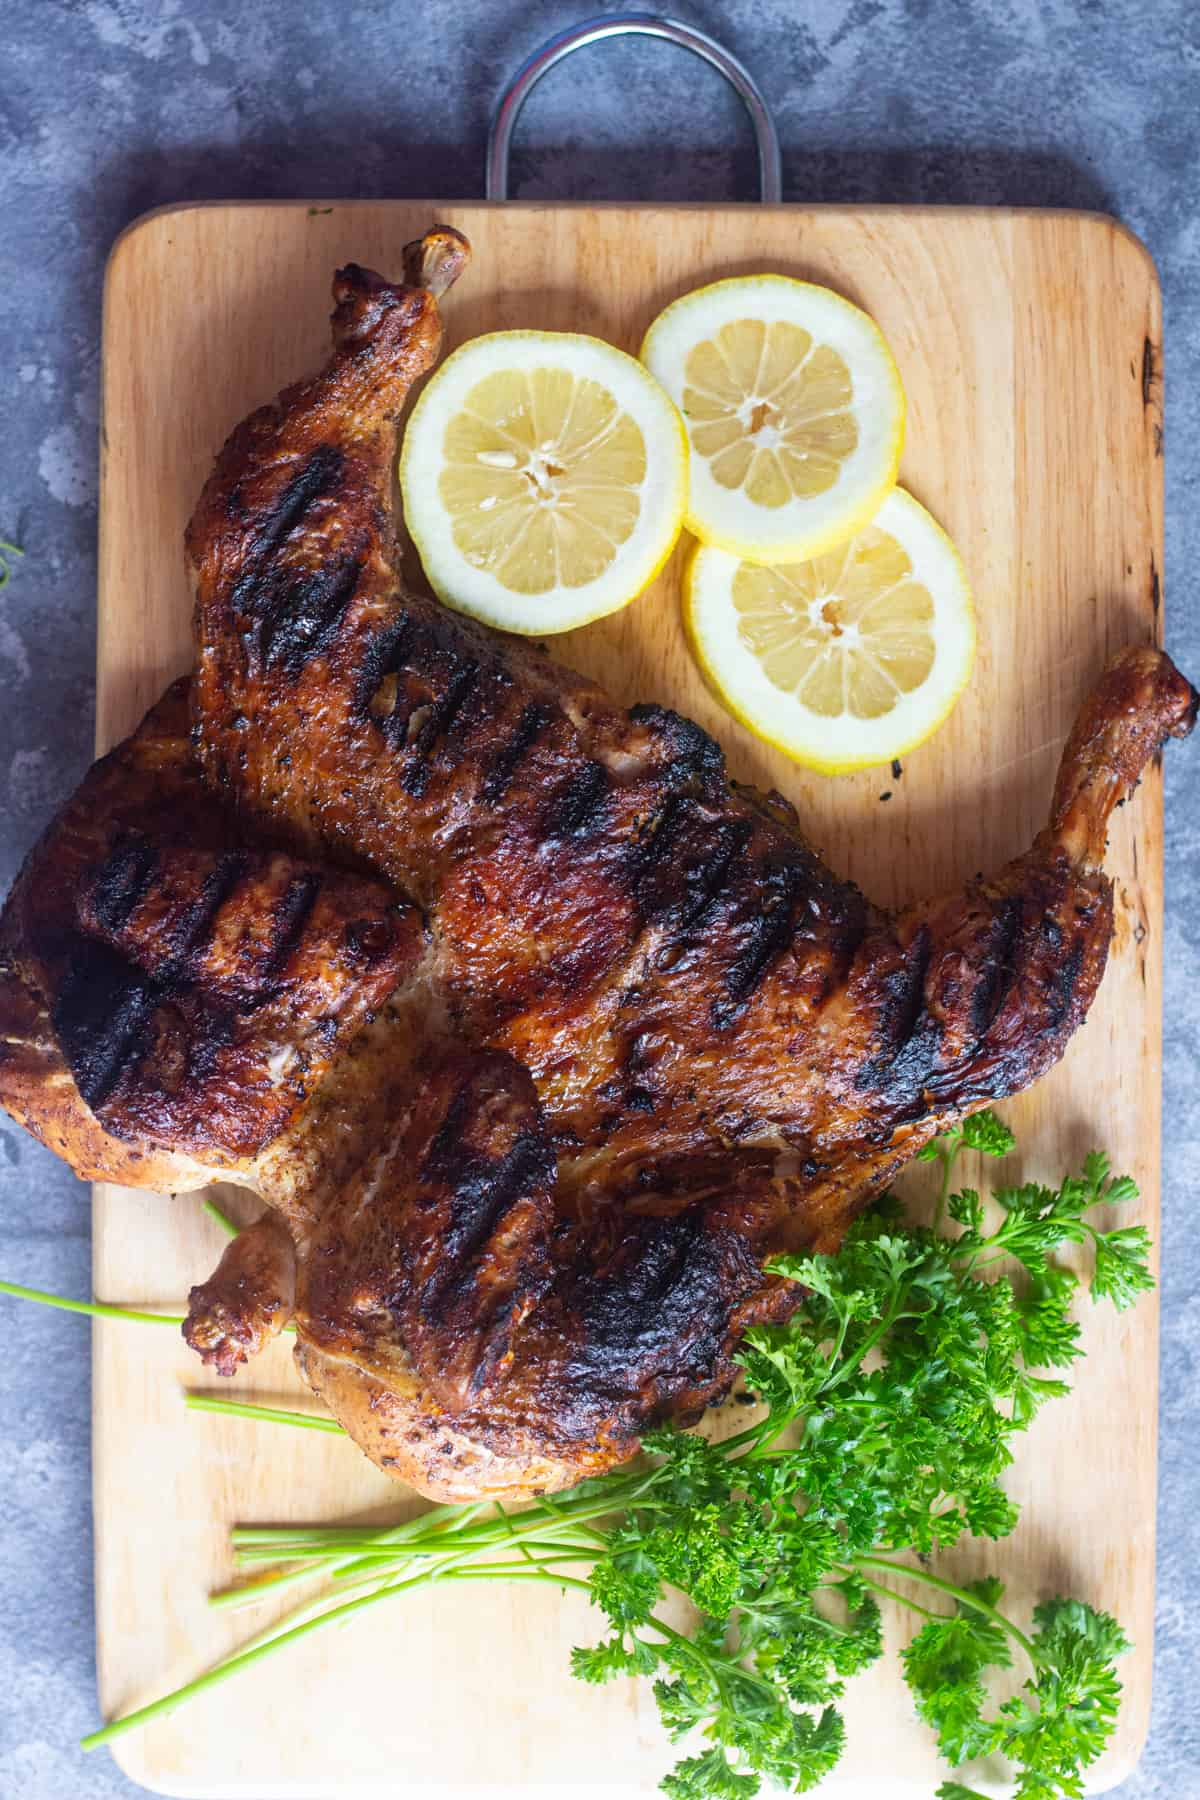 When spatchcocked, the chicken cooks more evenly. Grilled spatchcock chicken is juicy on the inside.